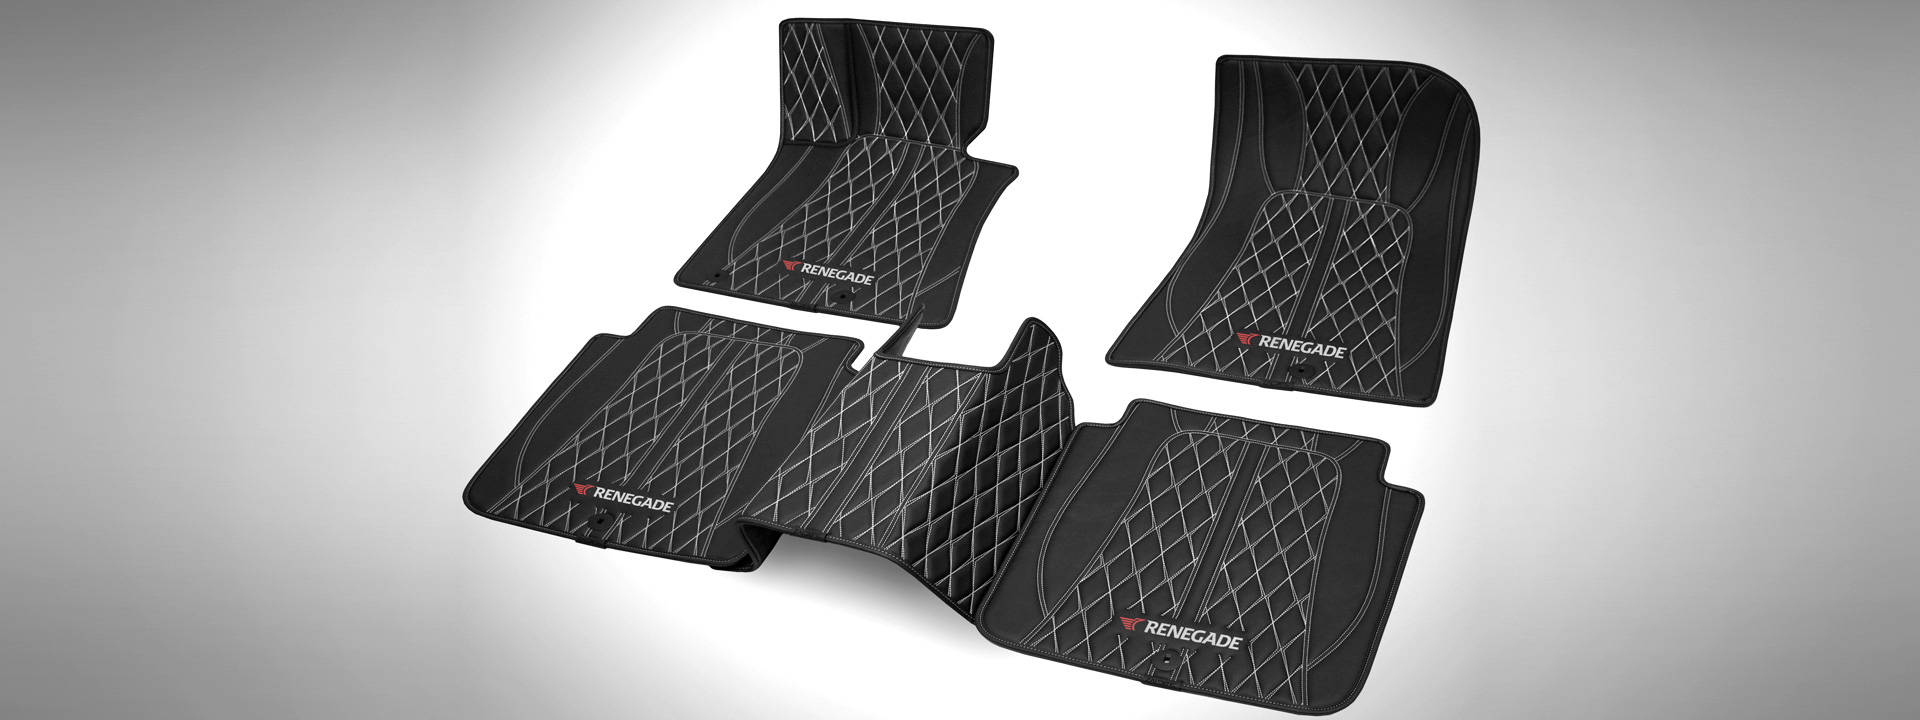 Set of car foot pads (carpets) for your vehicle from renegade-design